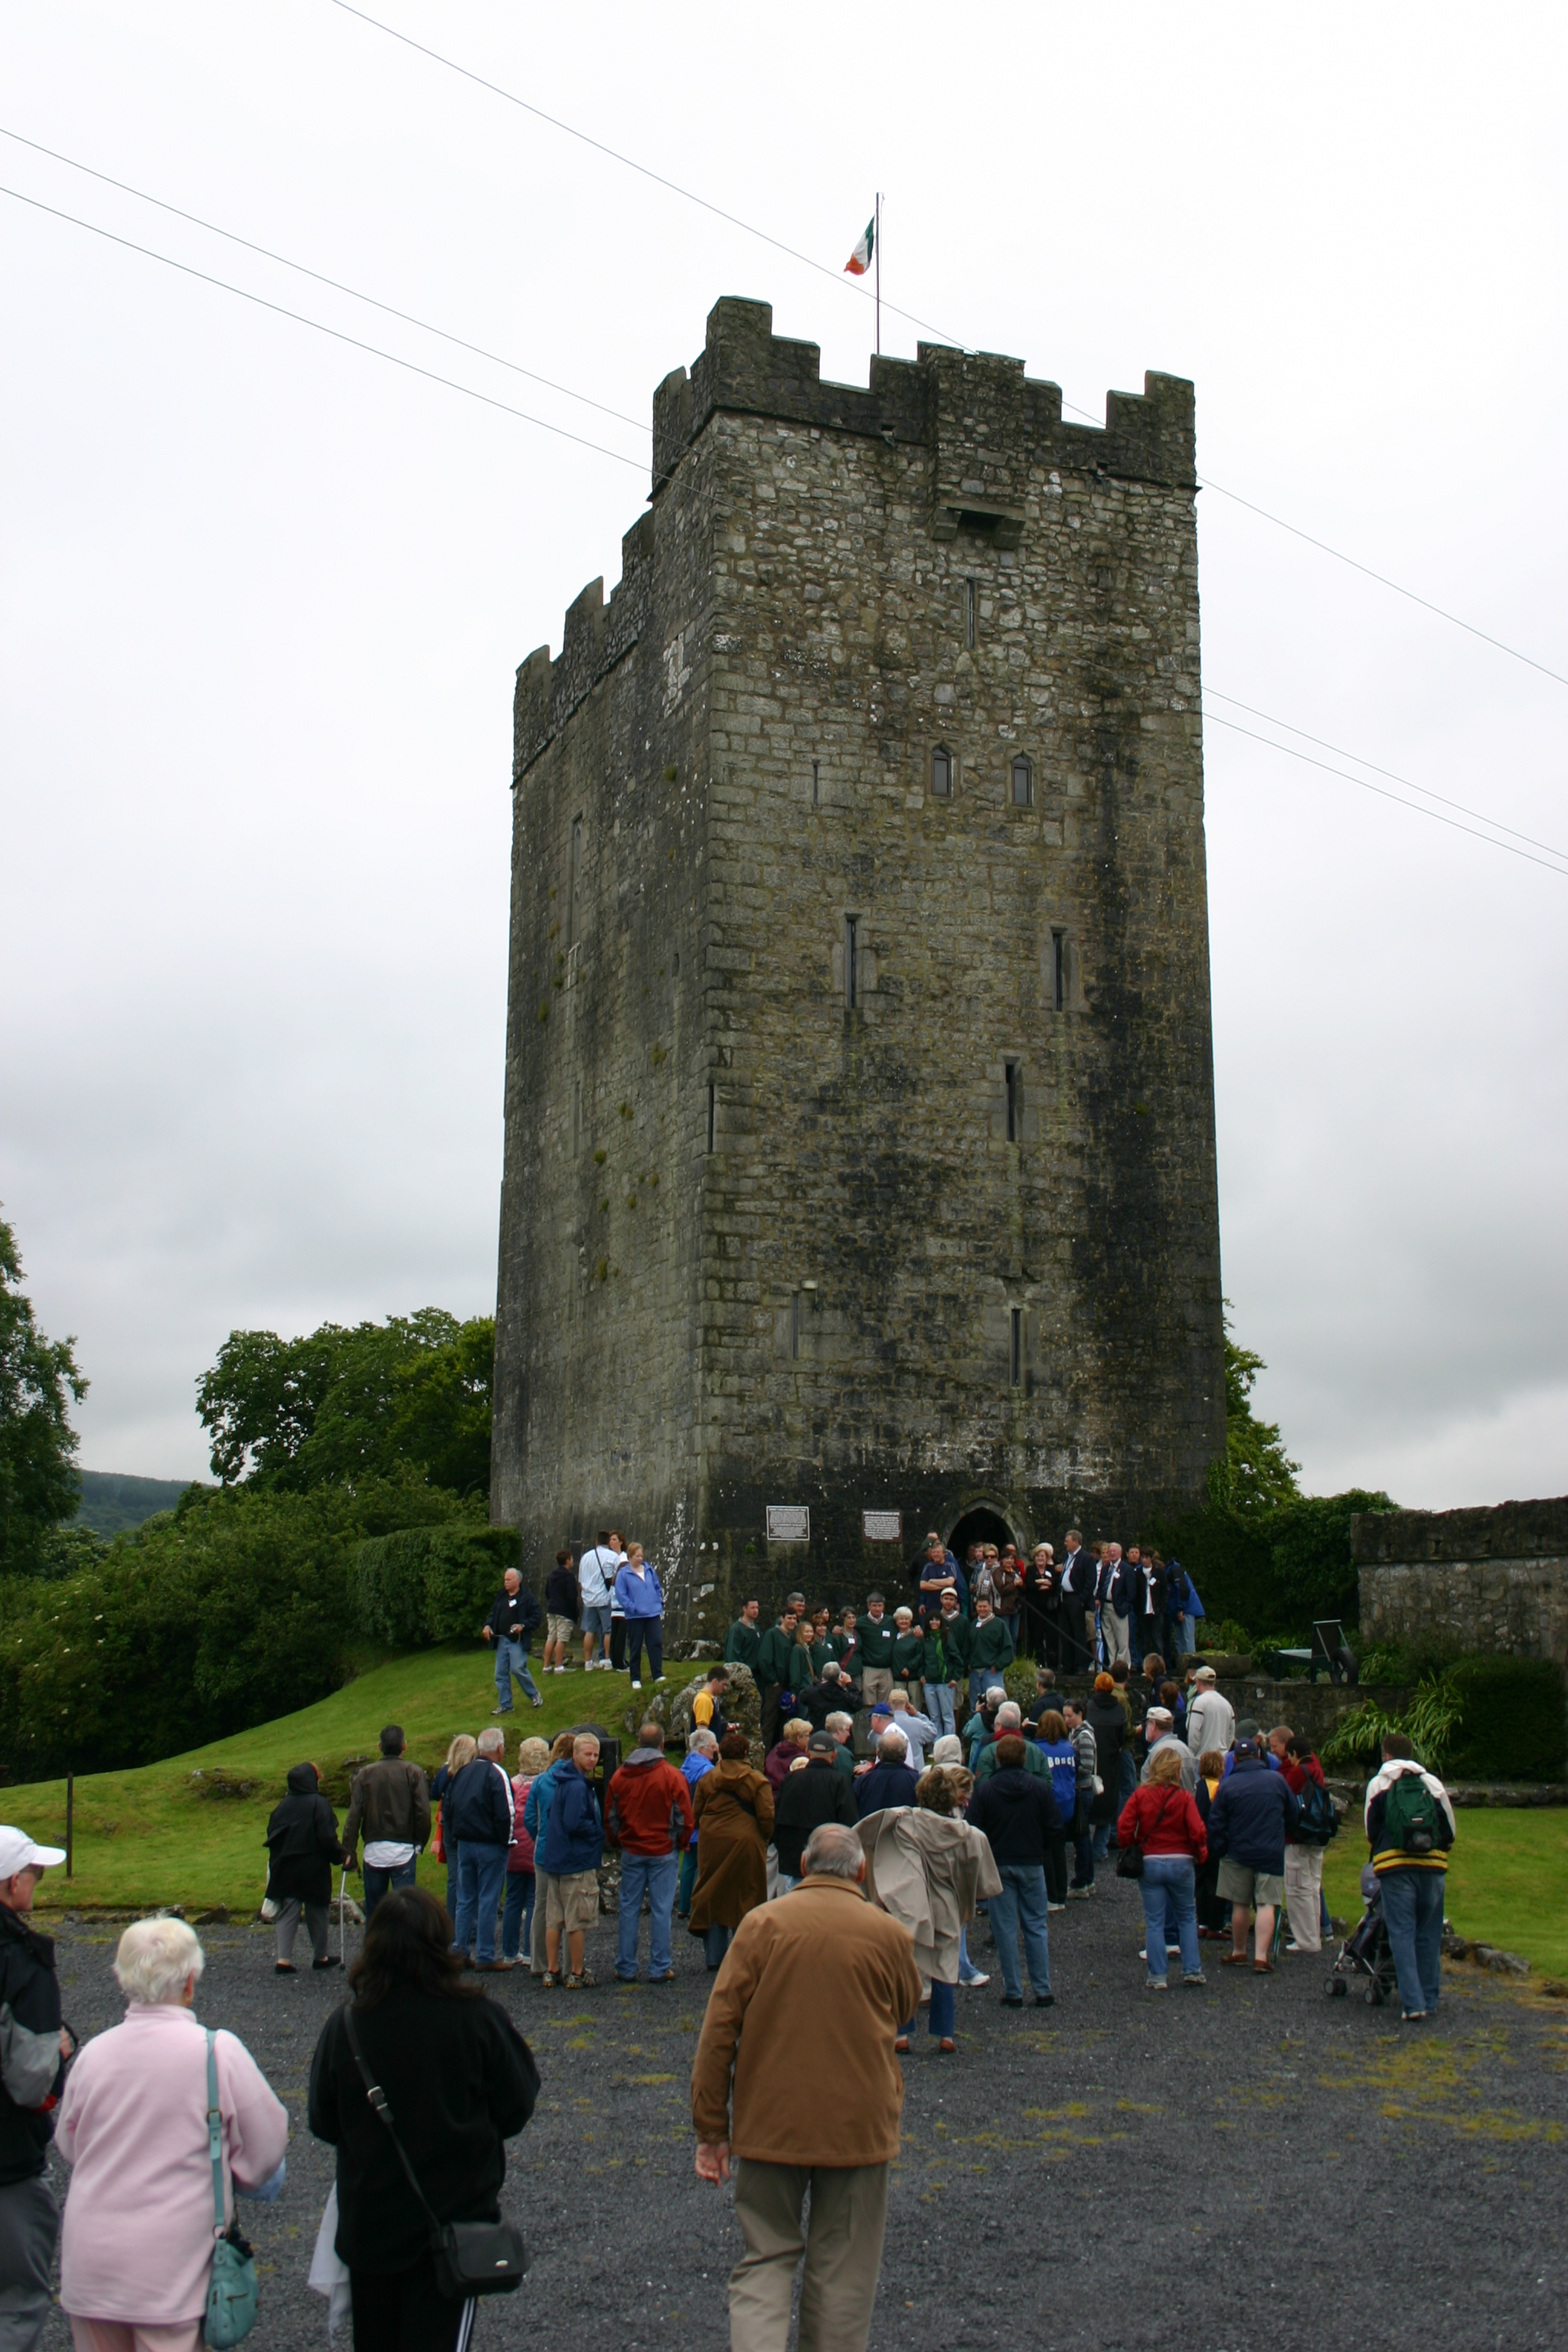 A Message from the Dysert O'Dea Castle Committee